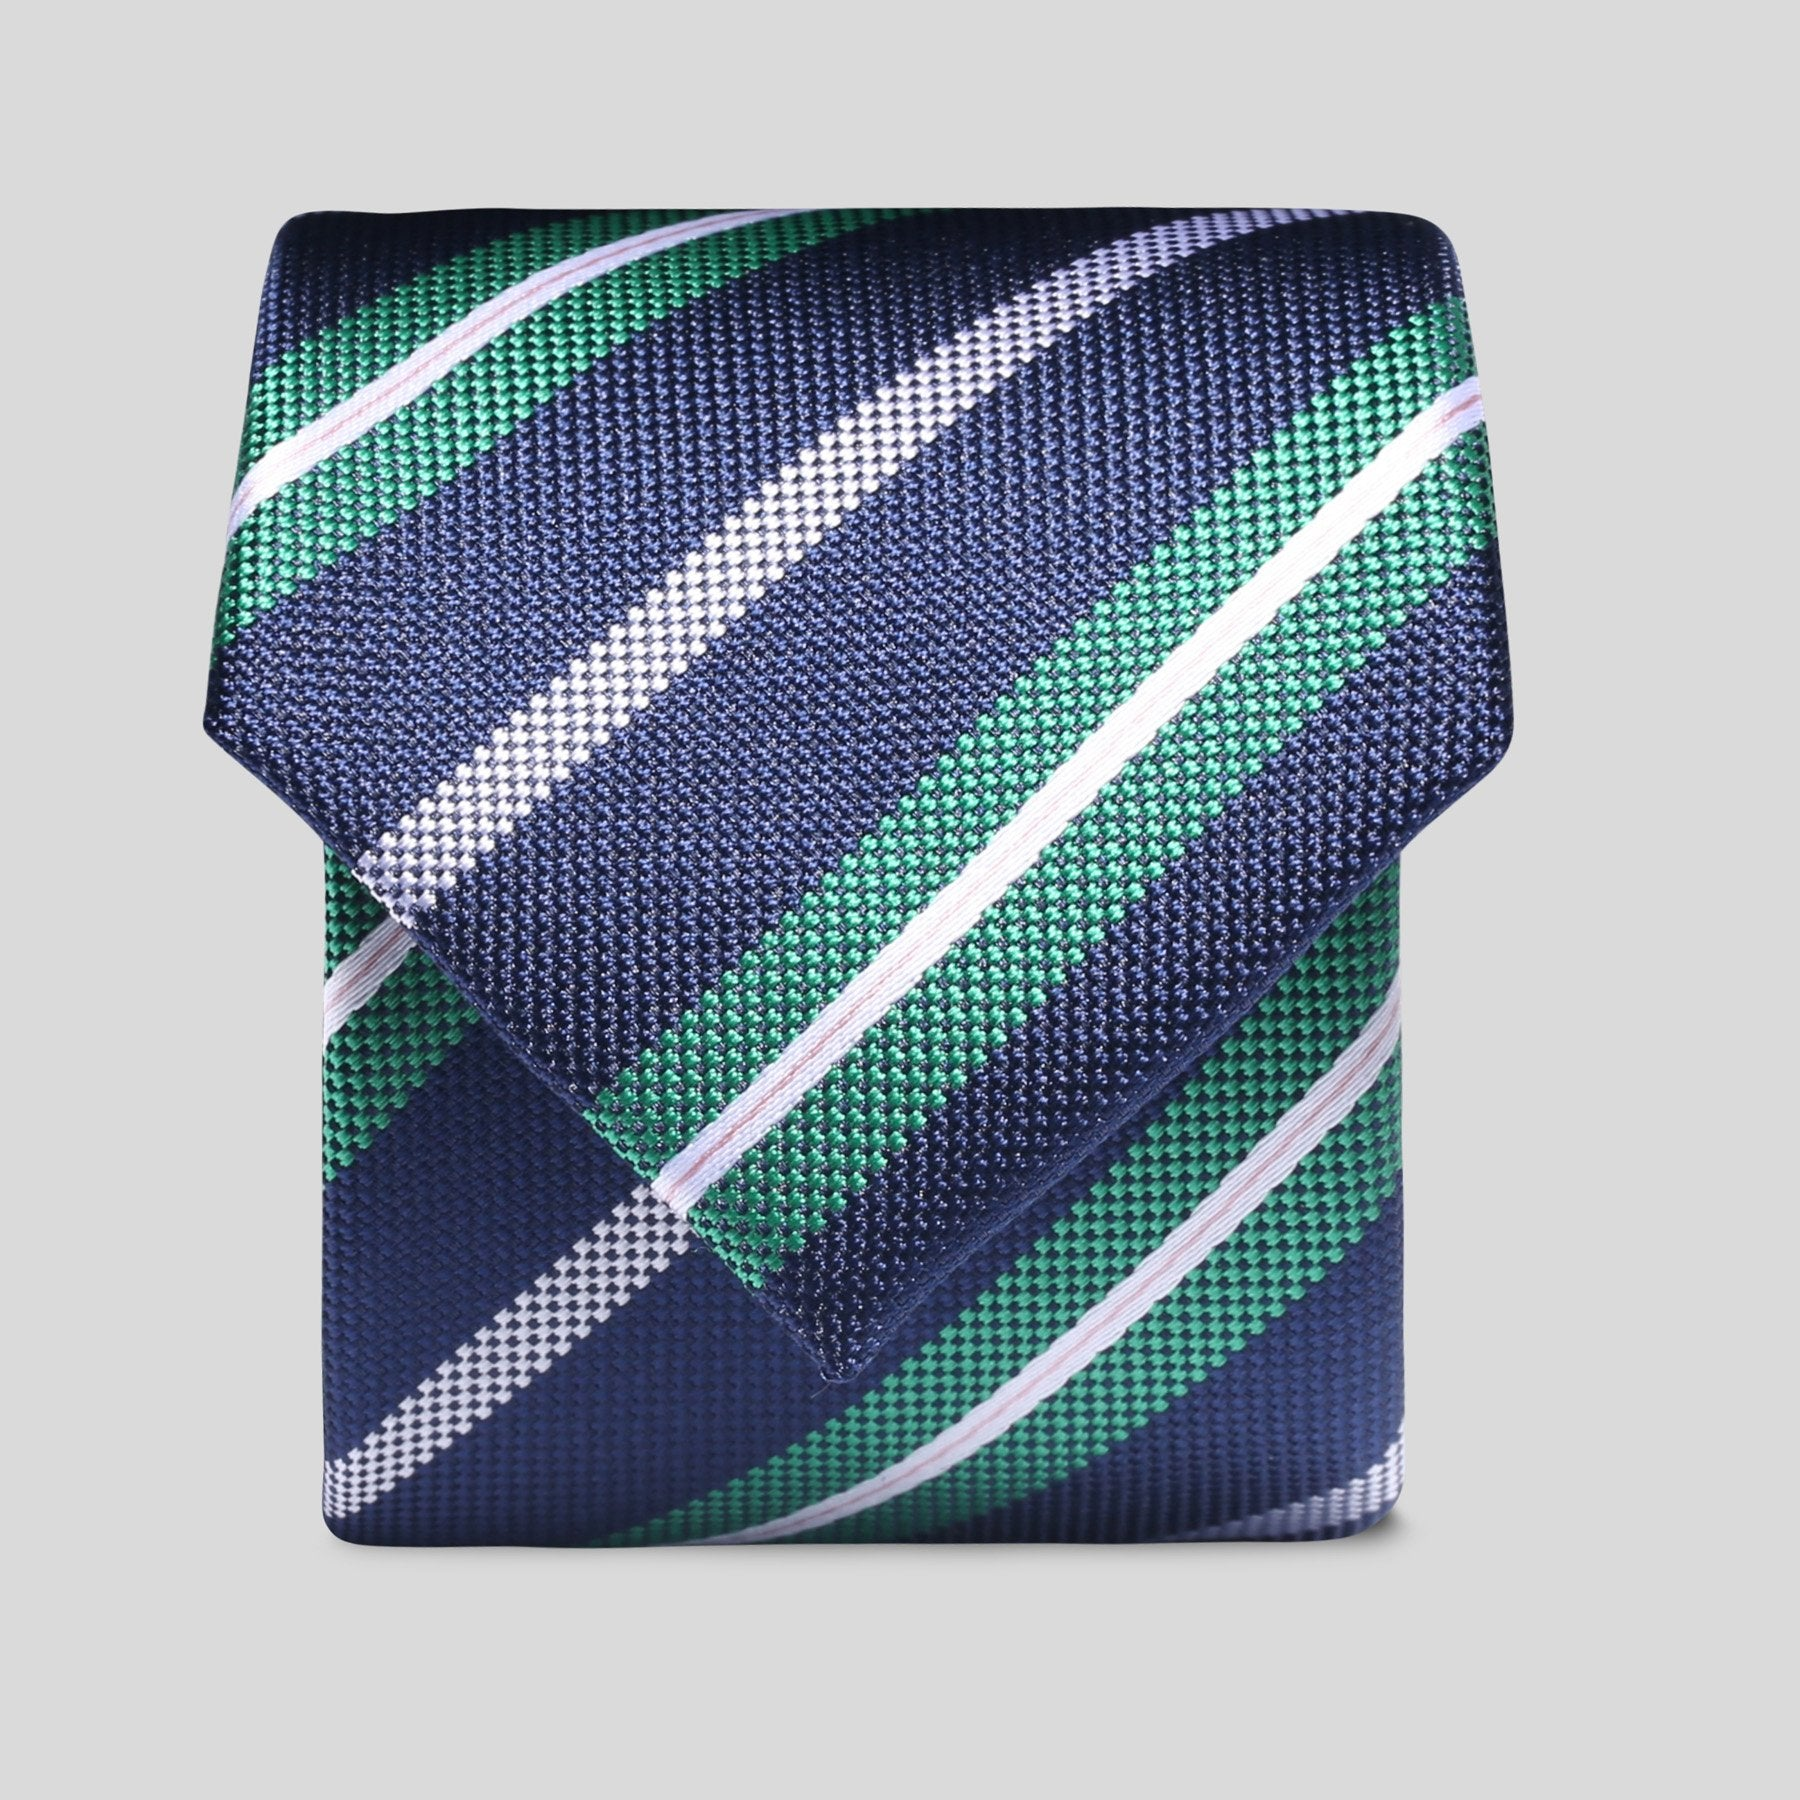 TS4162-01-Folkespeare-Navy-Emerald-And-White-Diagonal-Stripe-Slim-Tie-1